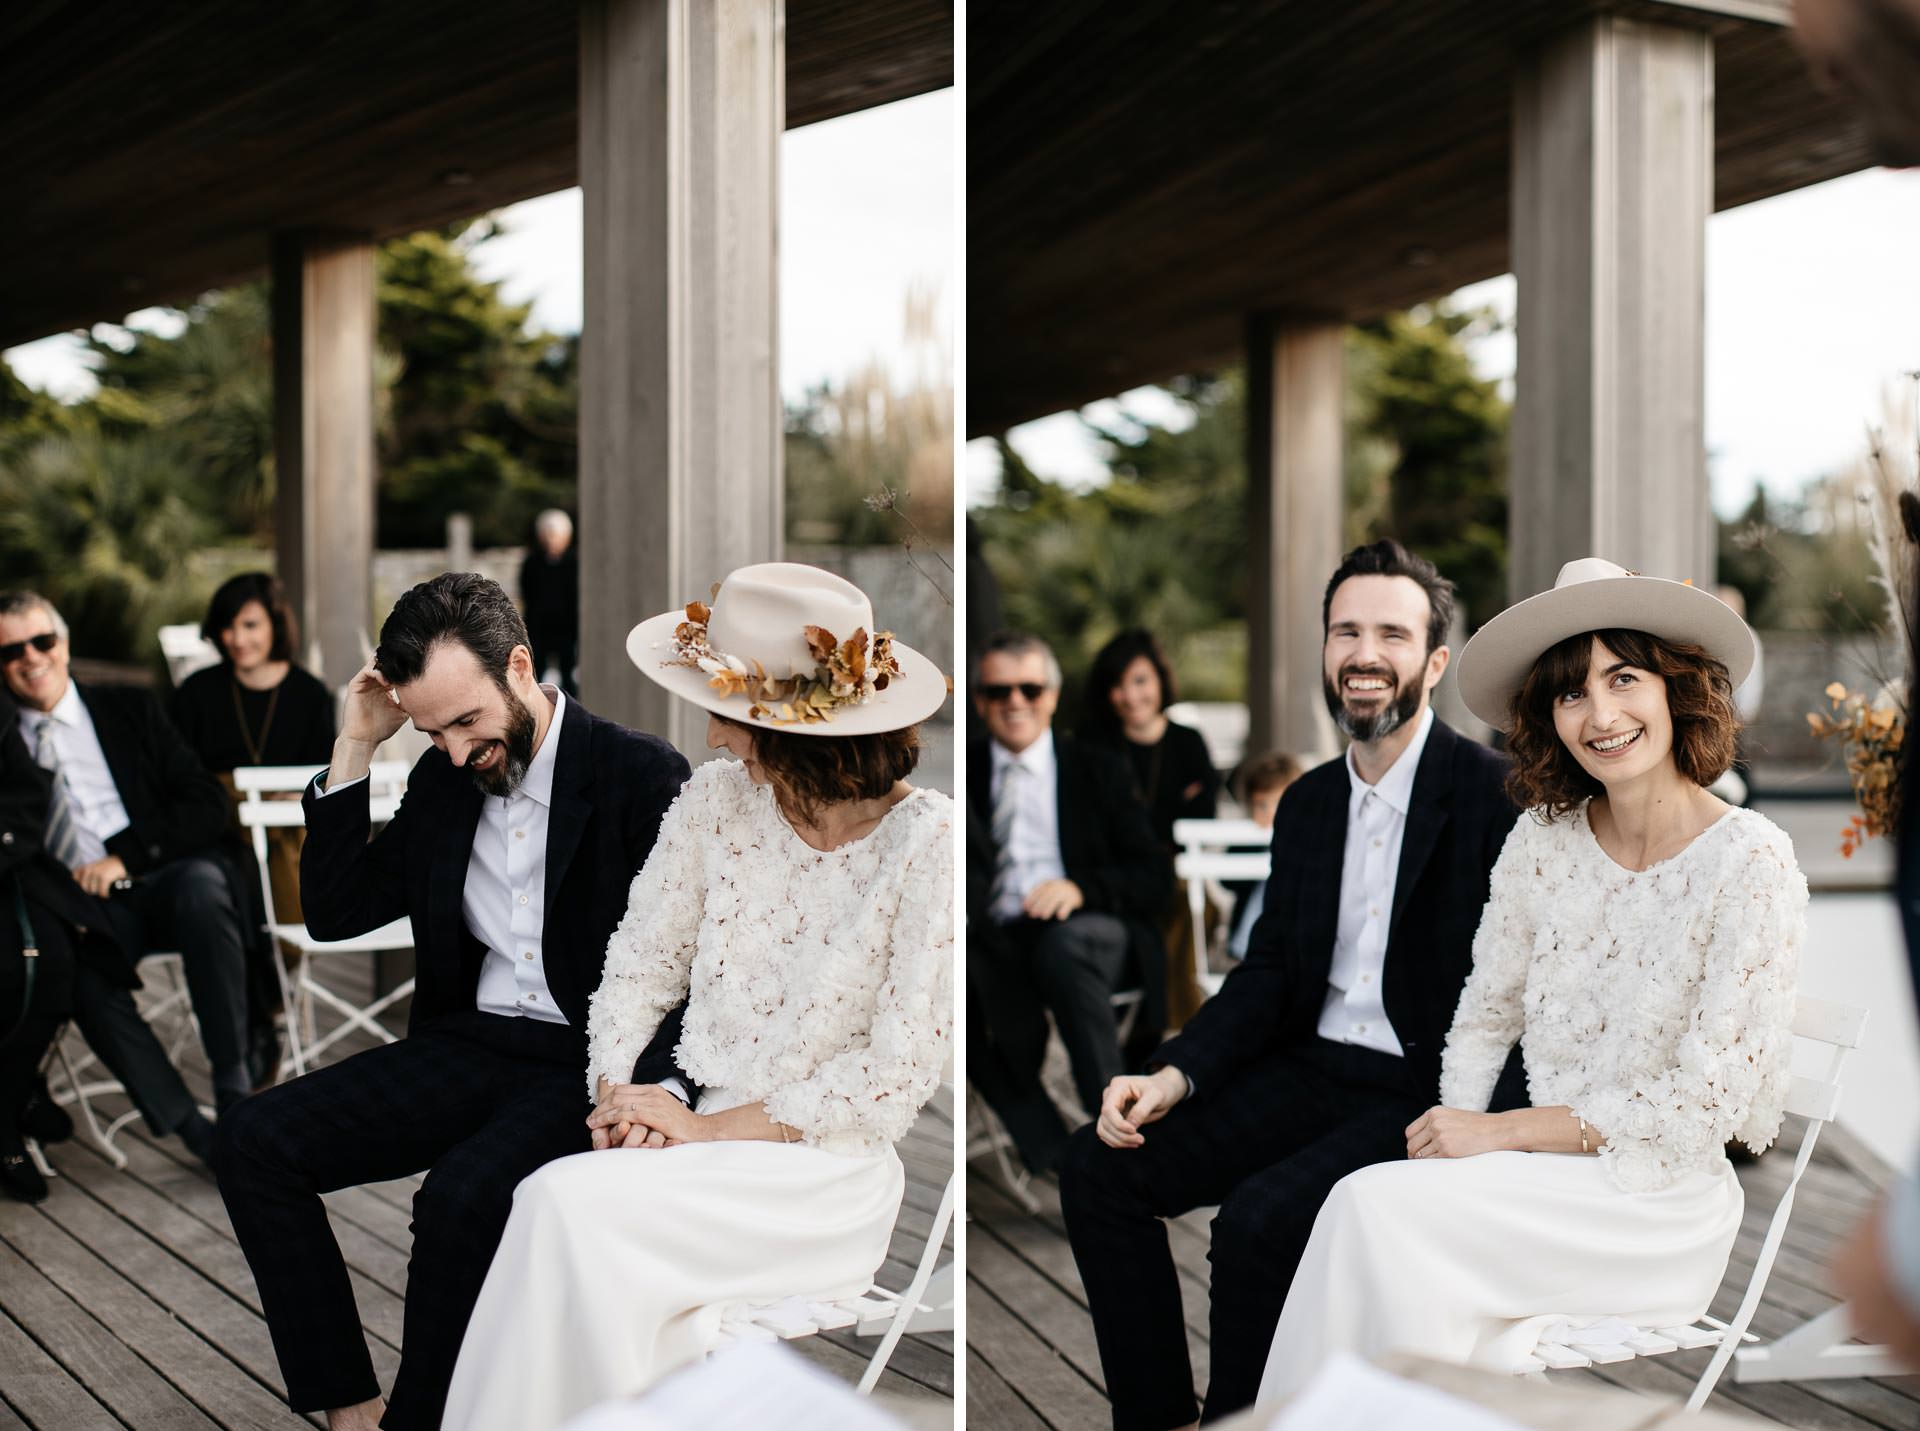 Boho Intimate Wedding France, Biarritz, by Jean-Laurent Gaudy